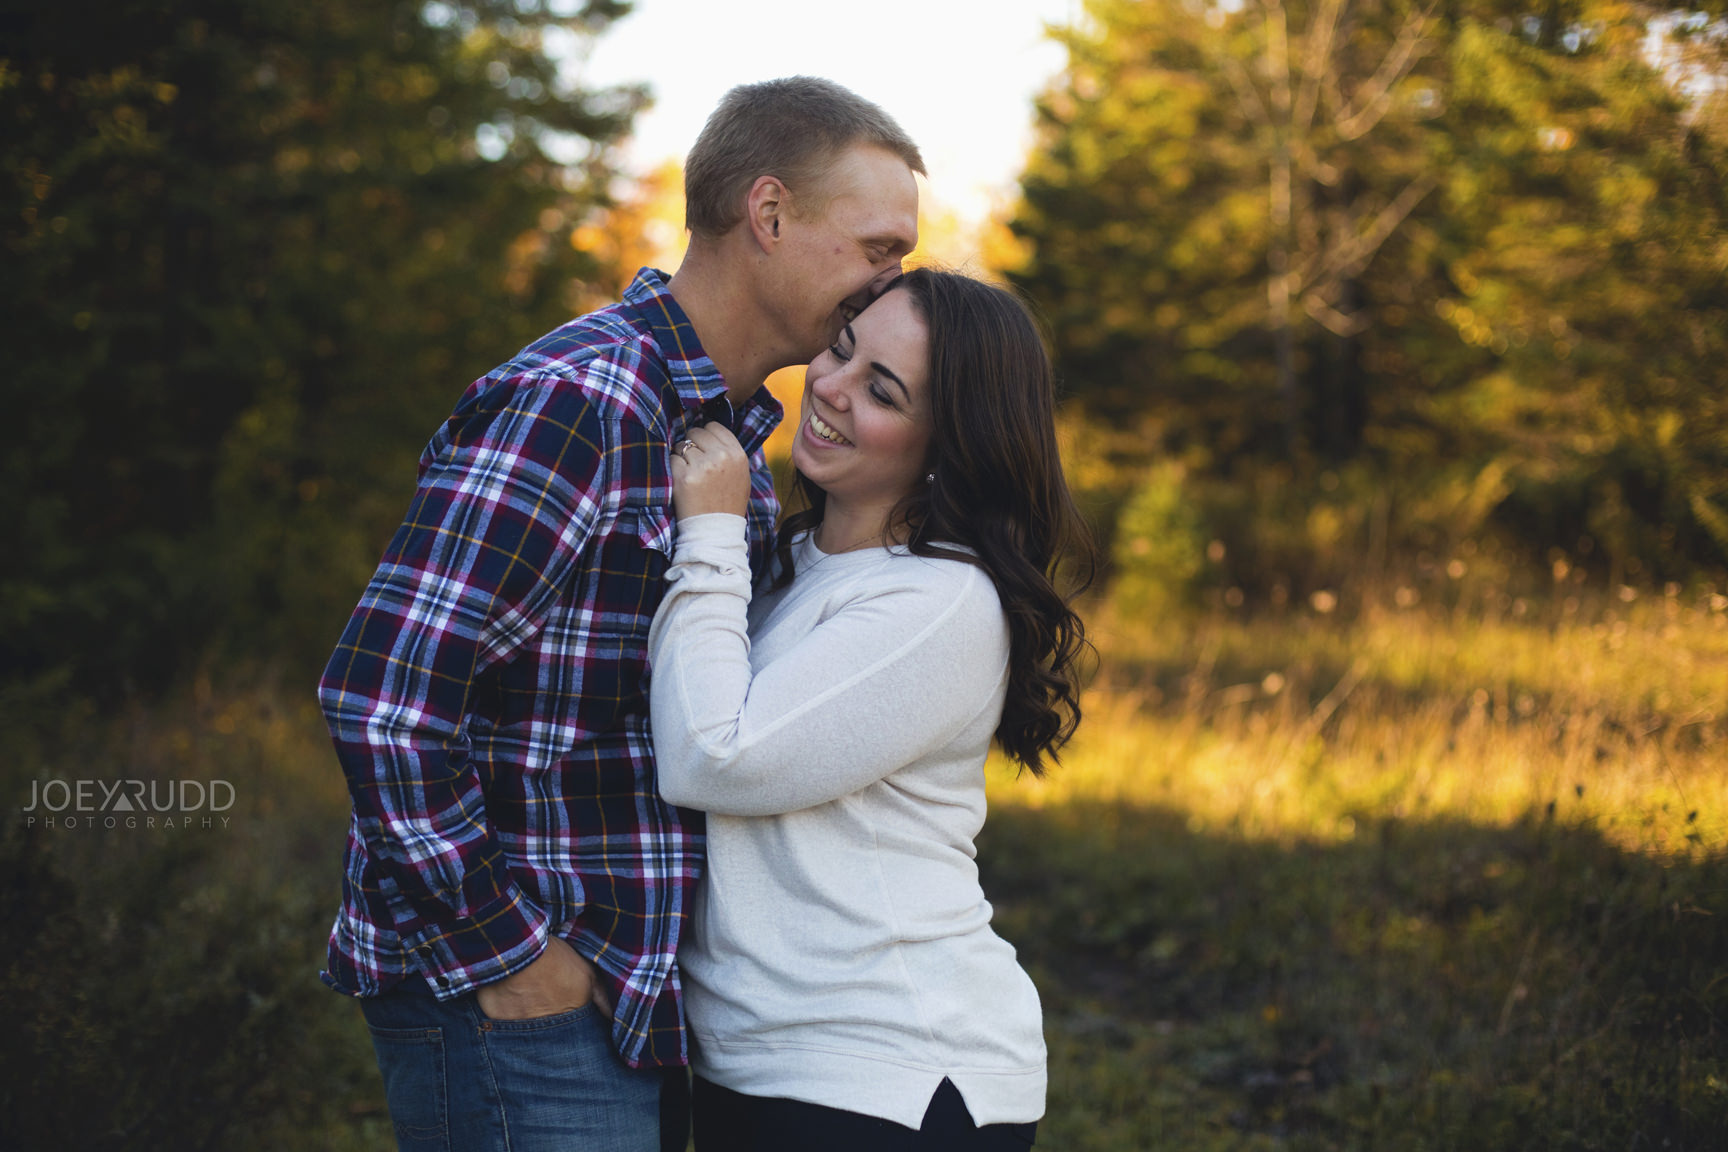 Carleton Place Engagement by Joey Rudd Photography Outdoors